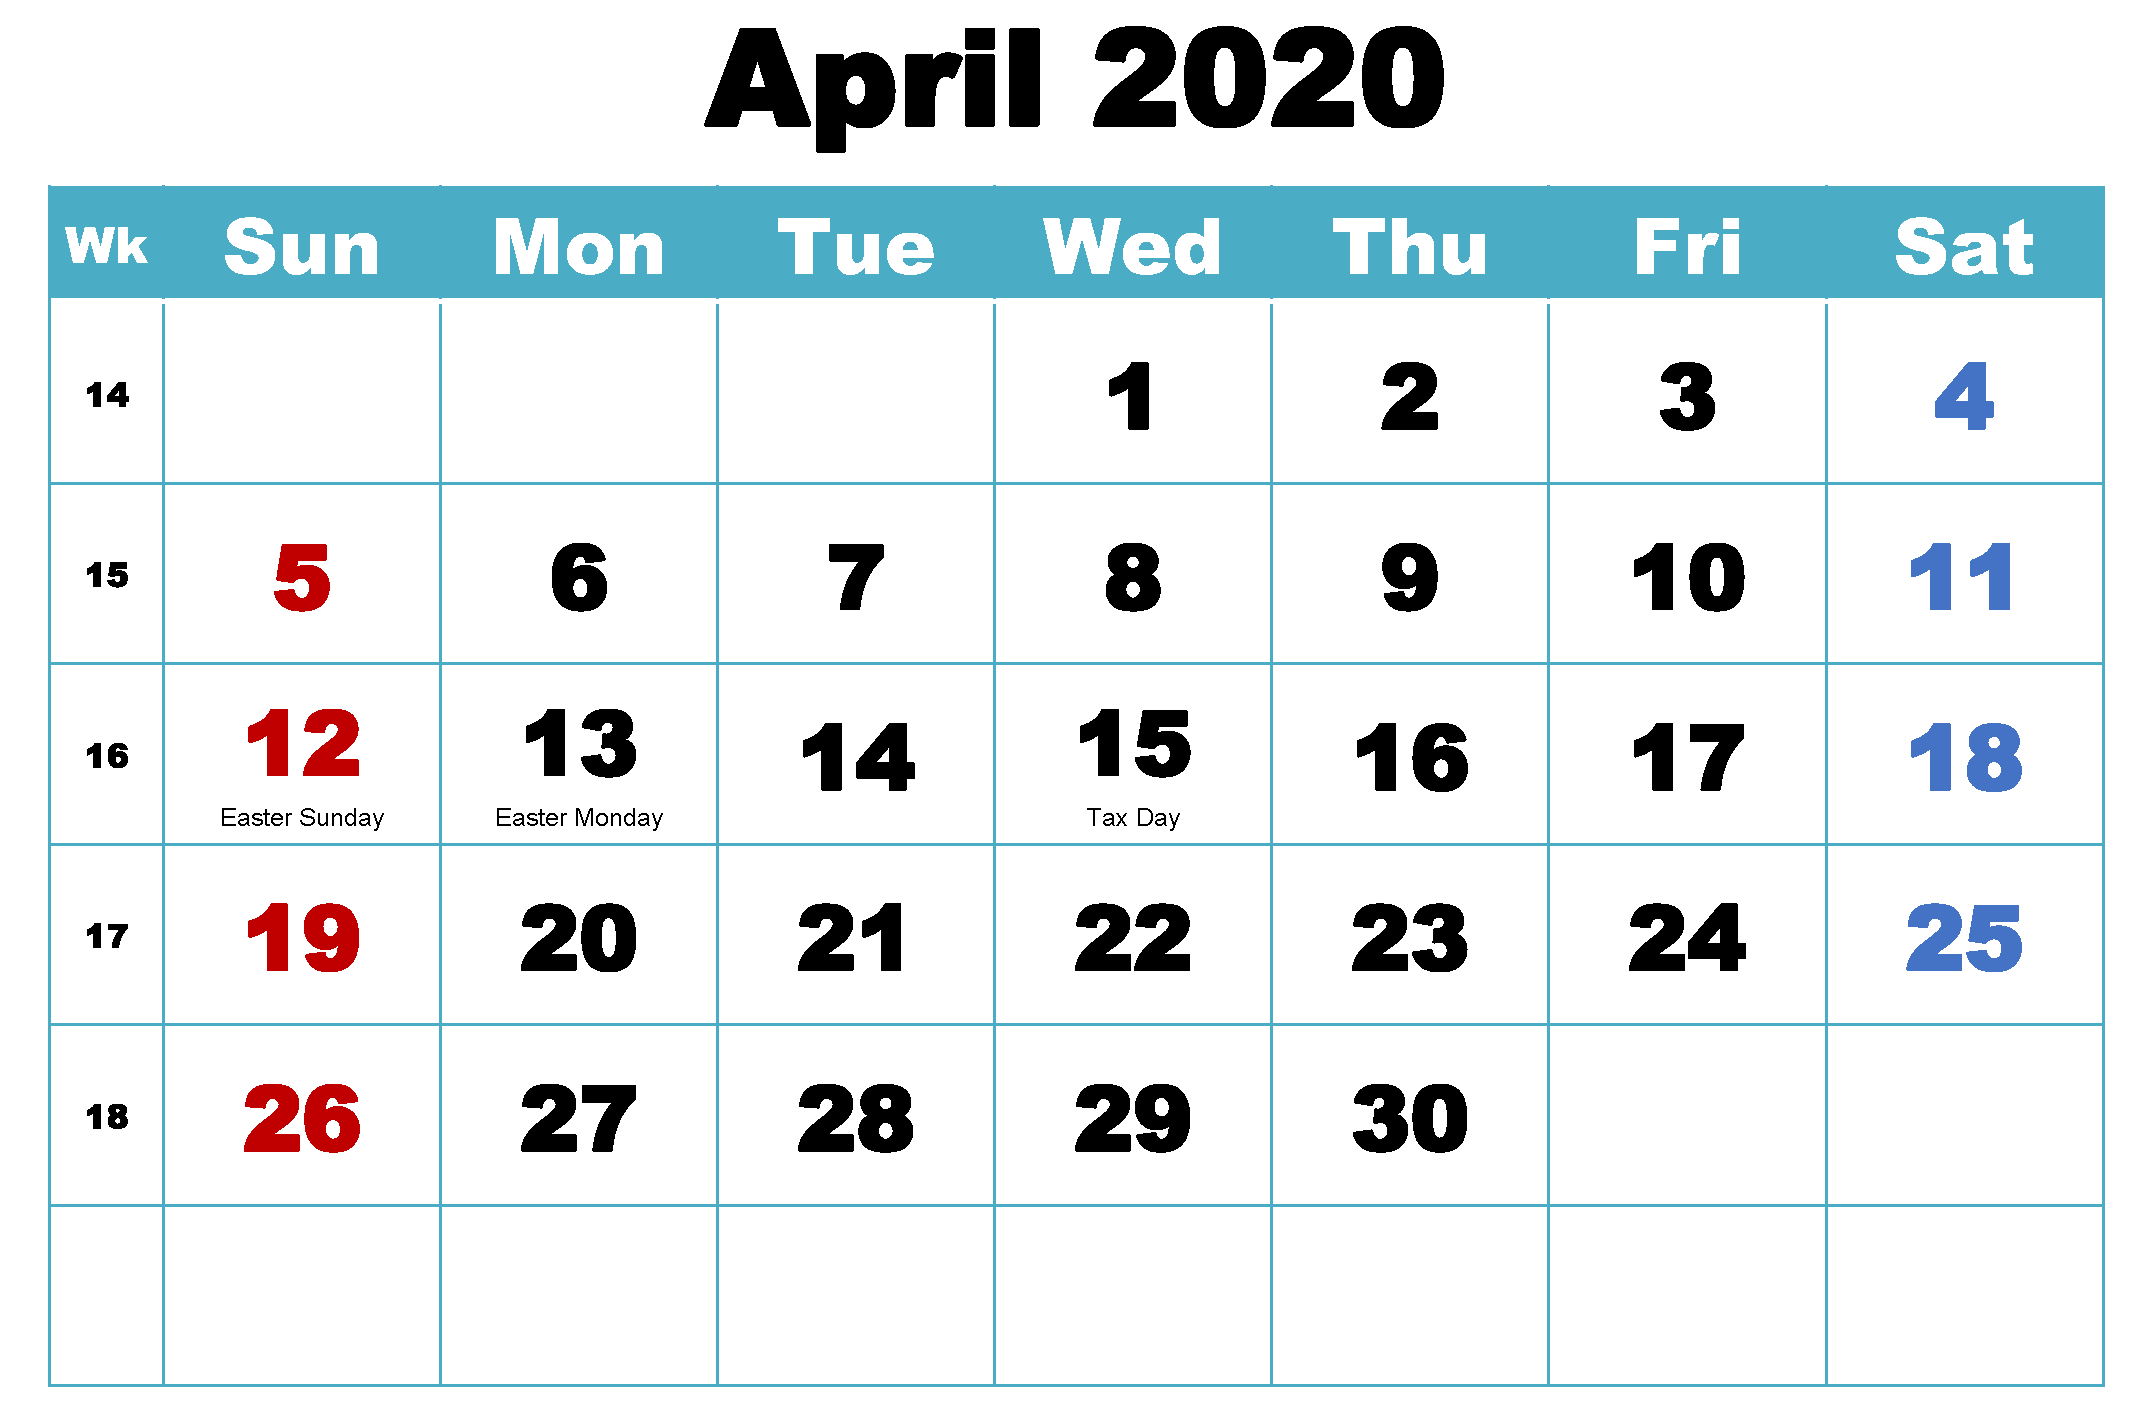 April 2020 Calendar Monthly Dates